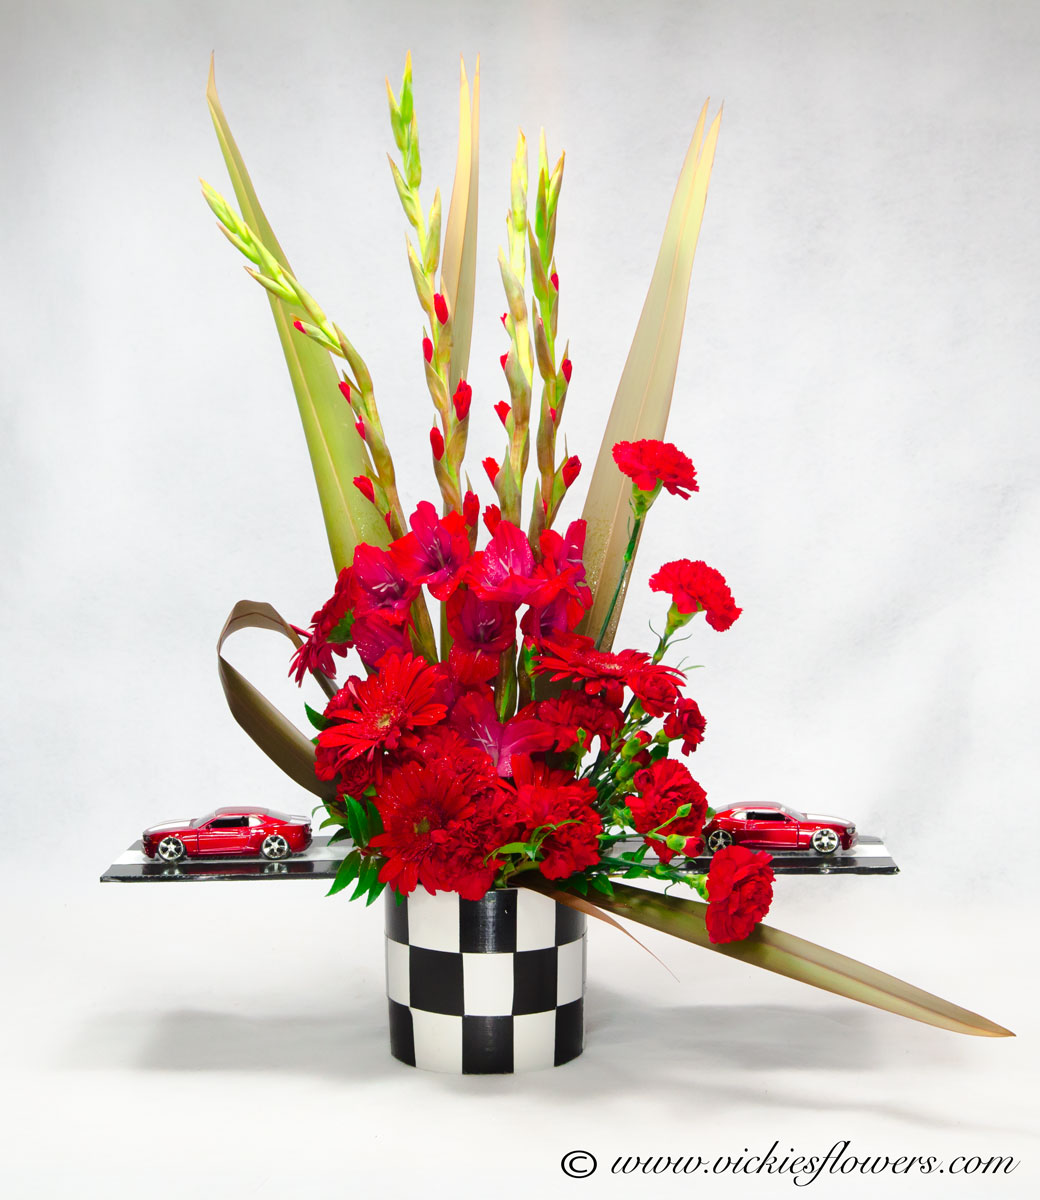 Broncos harley funeral flowers vickies flowers brighton co florist unique themed sympathy 023 150 plus tax and delivery red race car or muscle car tribute in a black and white checkered vase muscle cars are extending izmirmasajfo Image collections